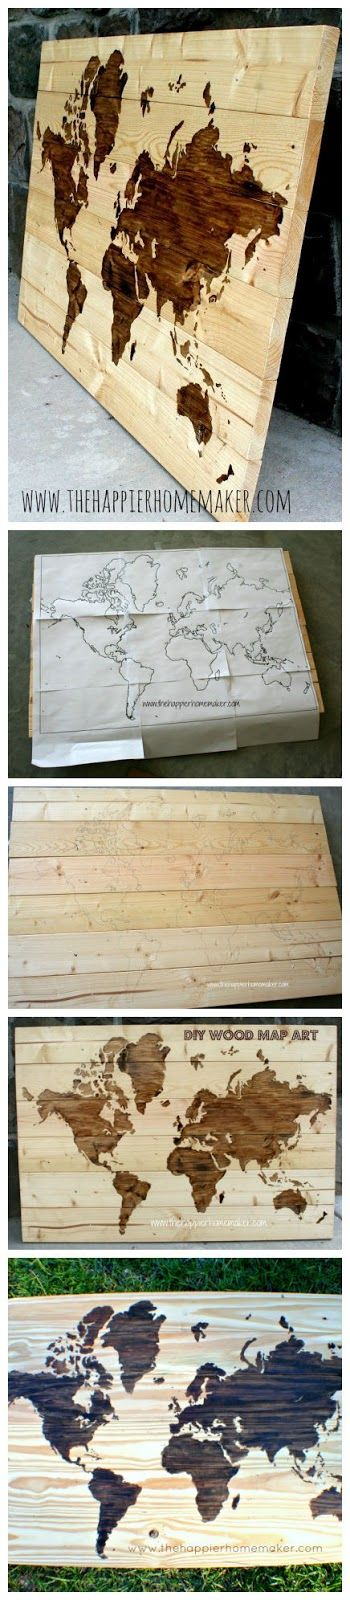 Diy wooden world map art yes this dark stain outside leave land diy wooden world map art yes this dark stain outside leave land mass original wood solutioingenieria Images